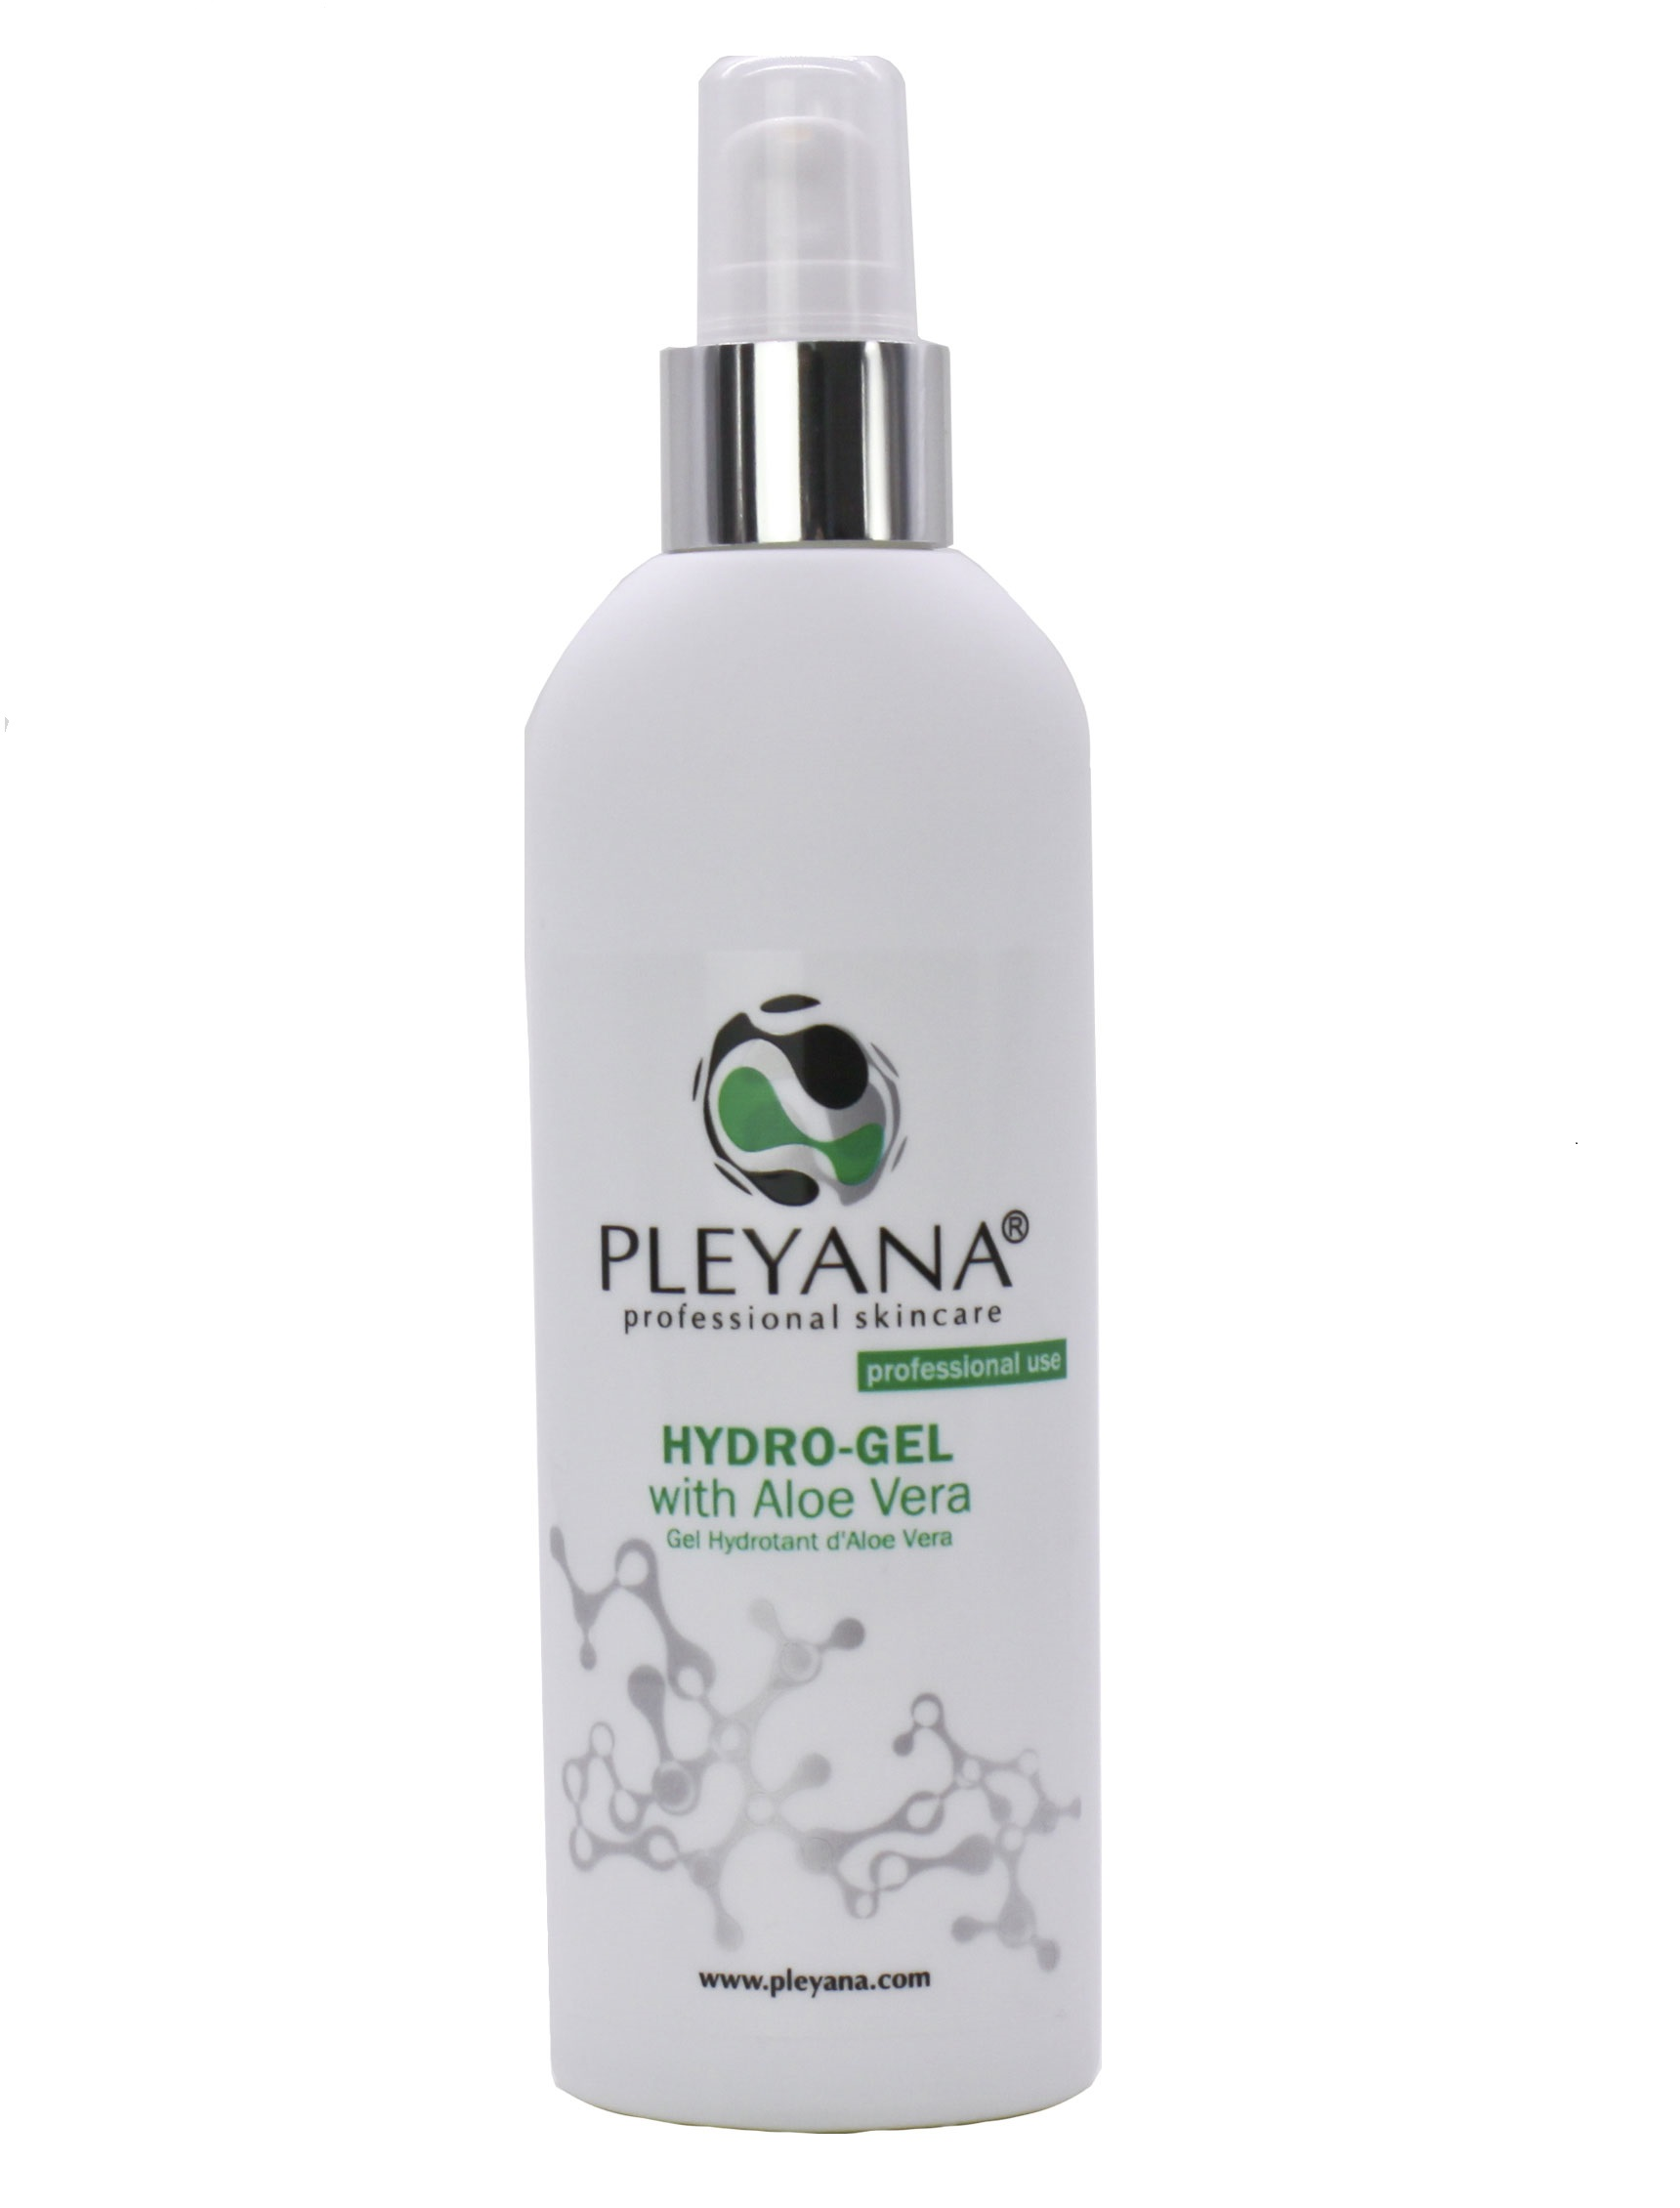 Гидро-гель с алоэ вера Pleyana Hydro-Gel With Aloe Vera